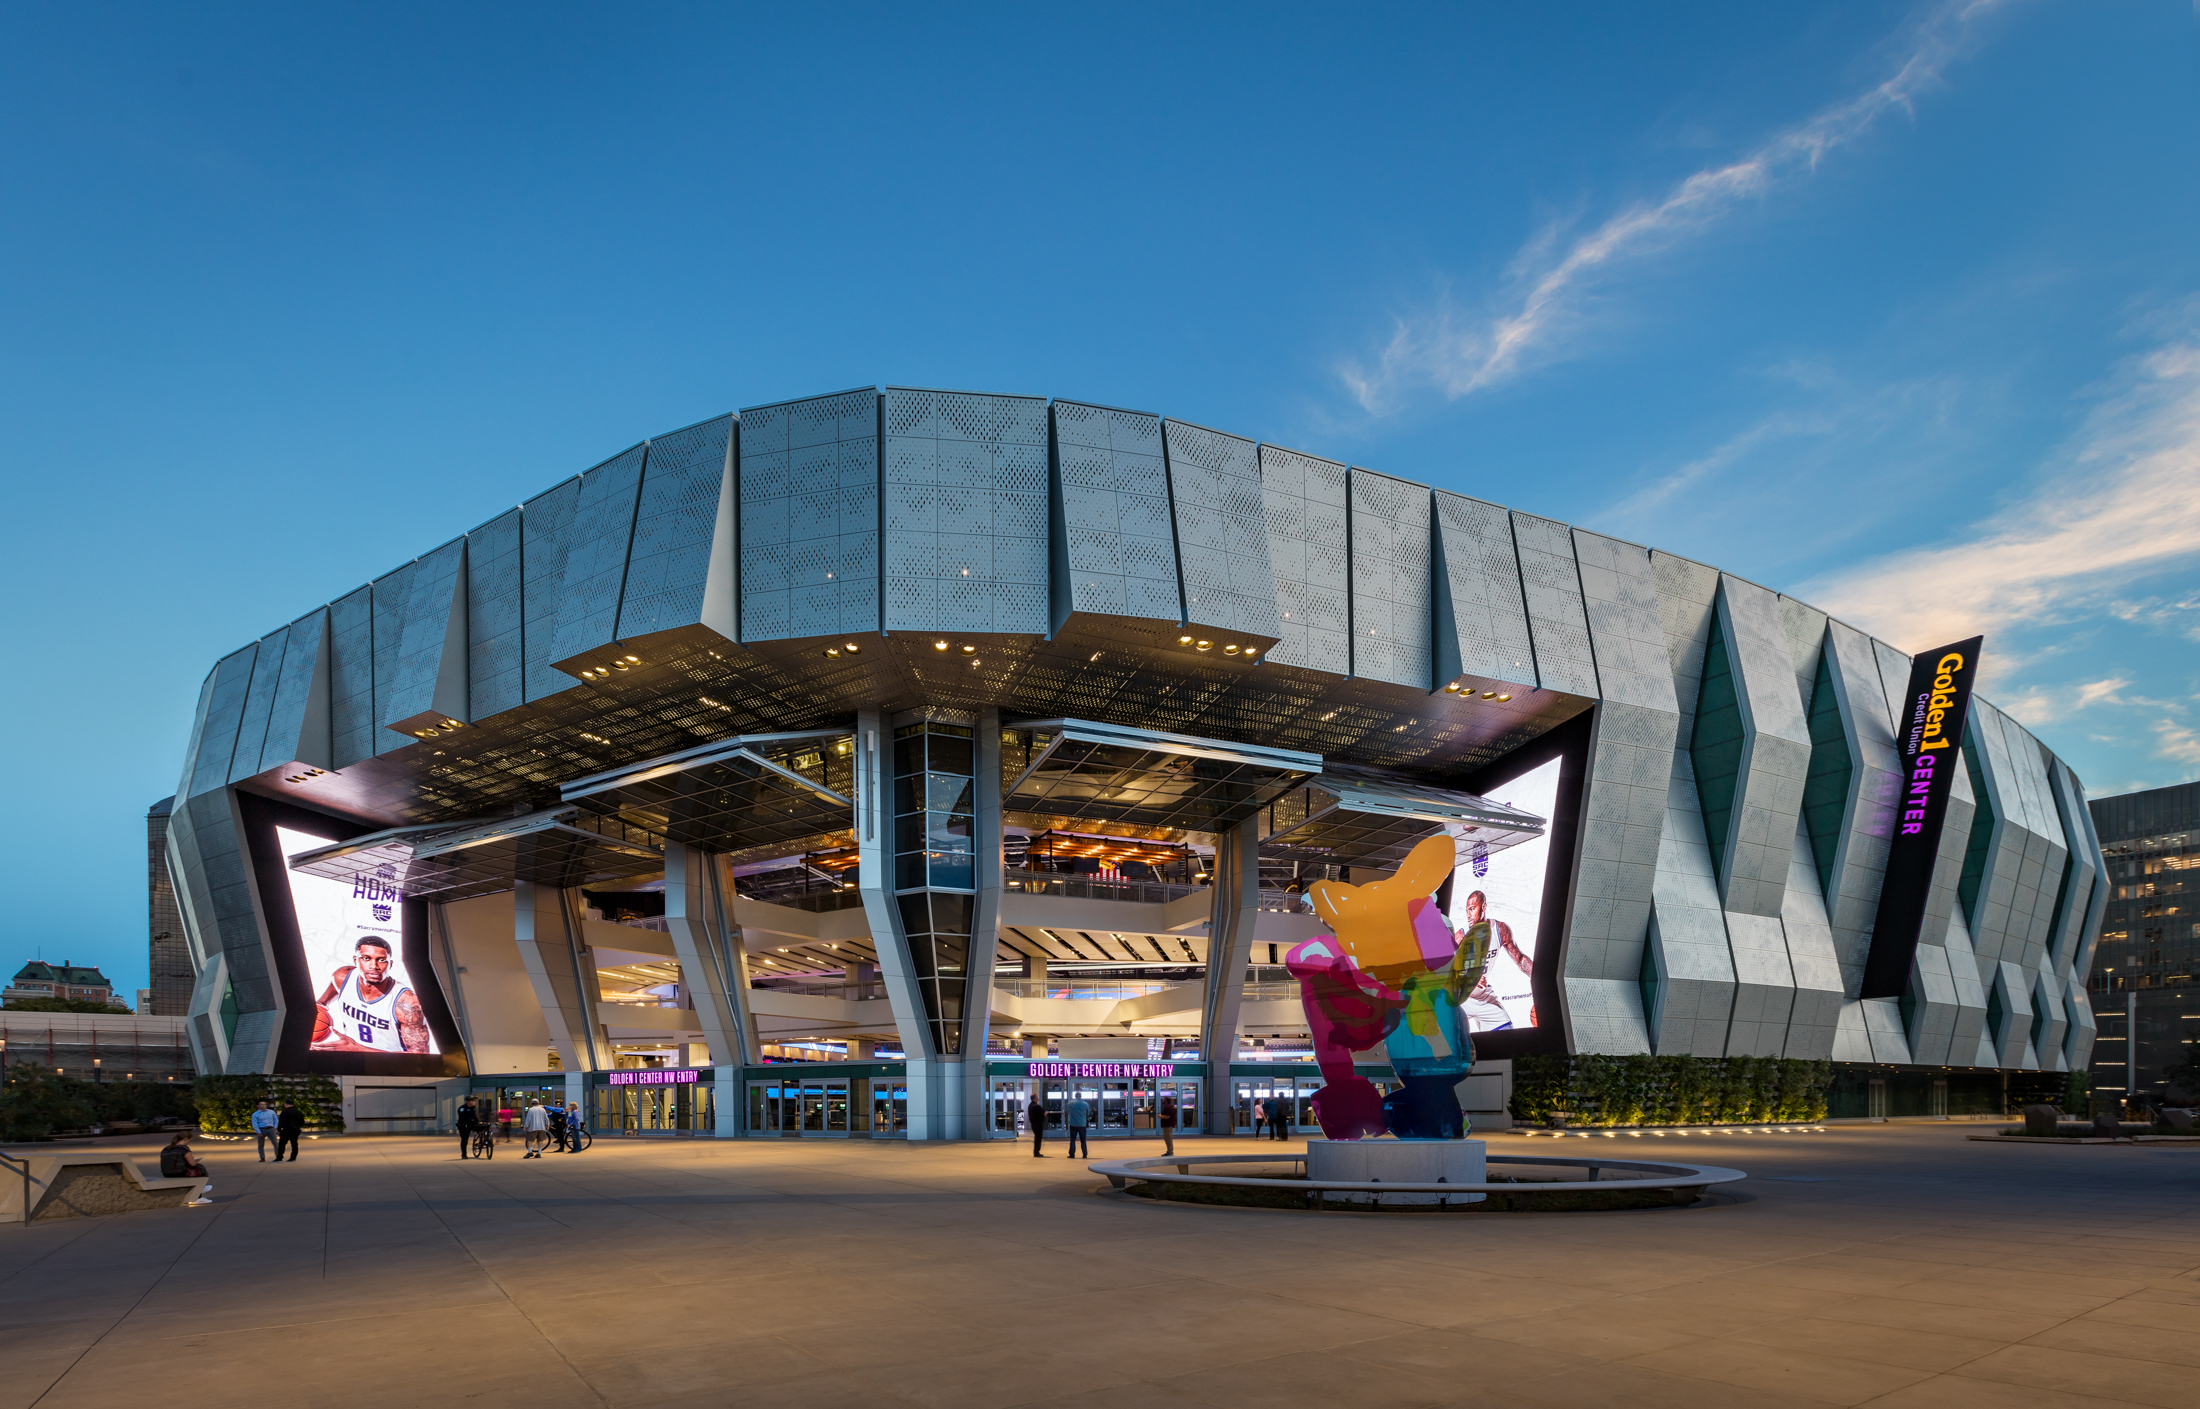 Image of Golden 1 Arena